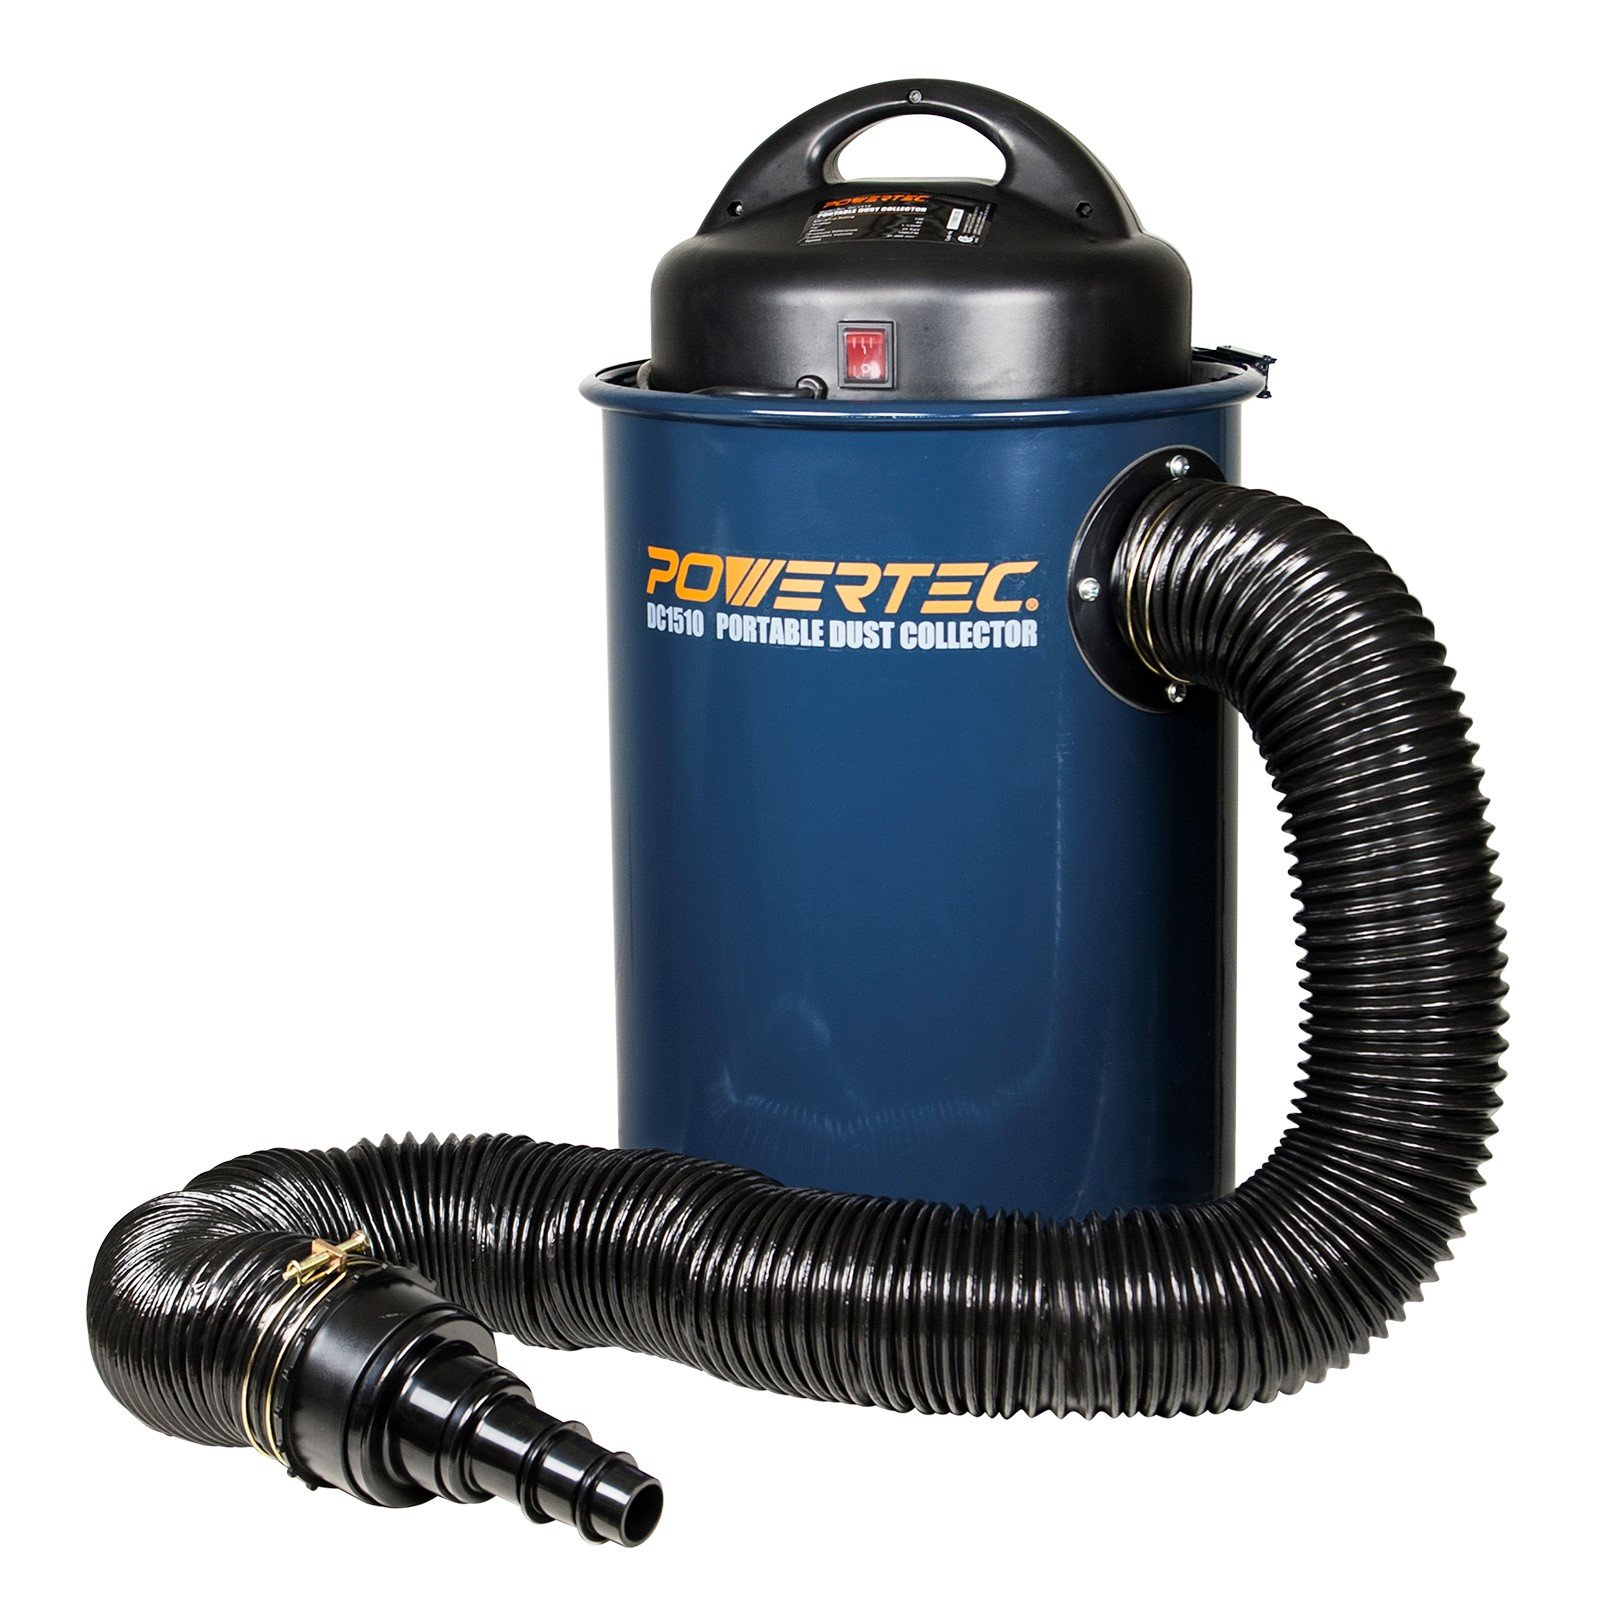 POWERTEC DC1510 Portable Dust Collector by POWERTEC